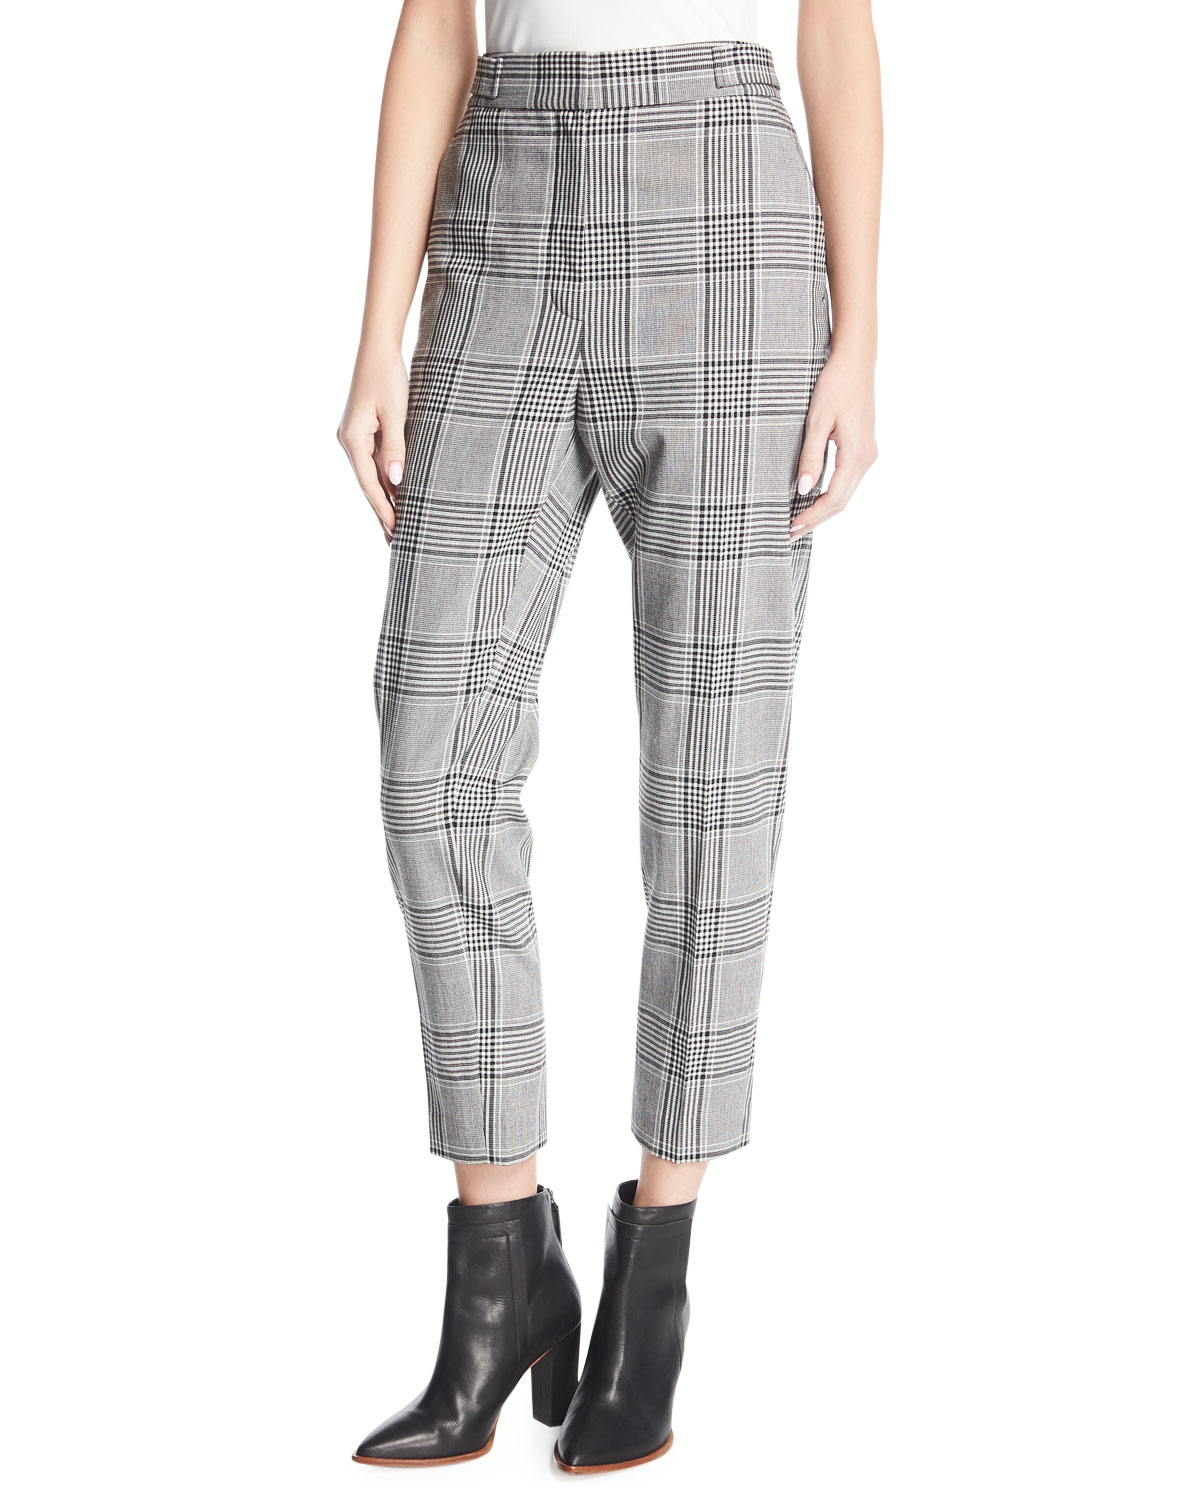 18e19d4cd08 Alexander Wang Plaid High-Waist Cigarette Pants